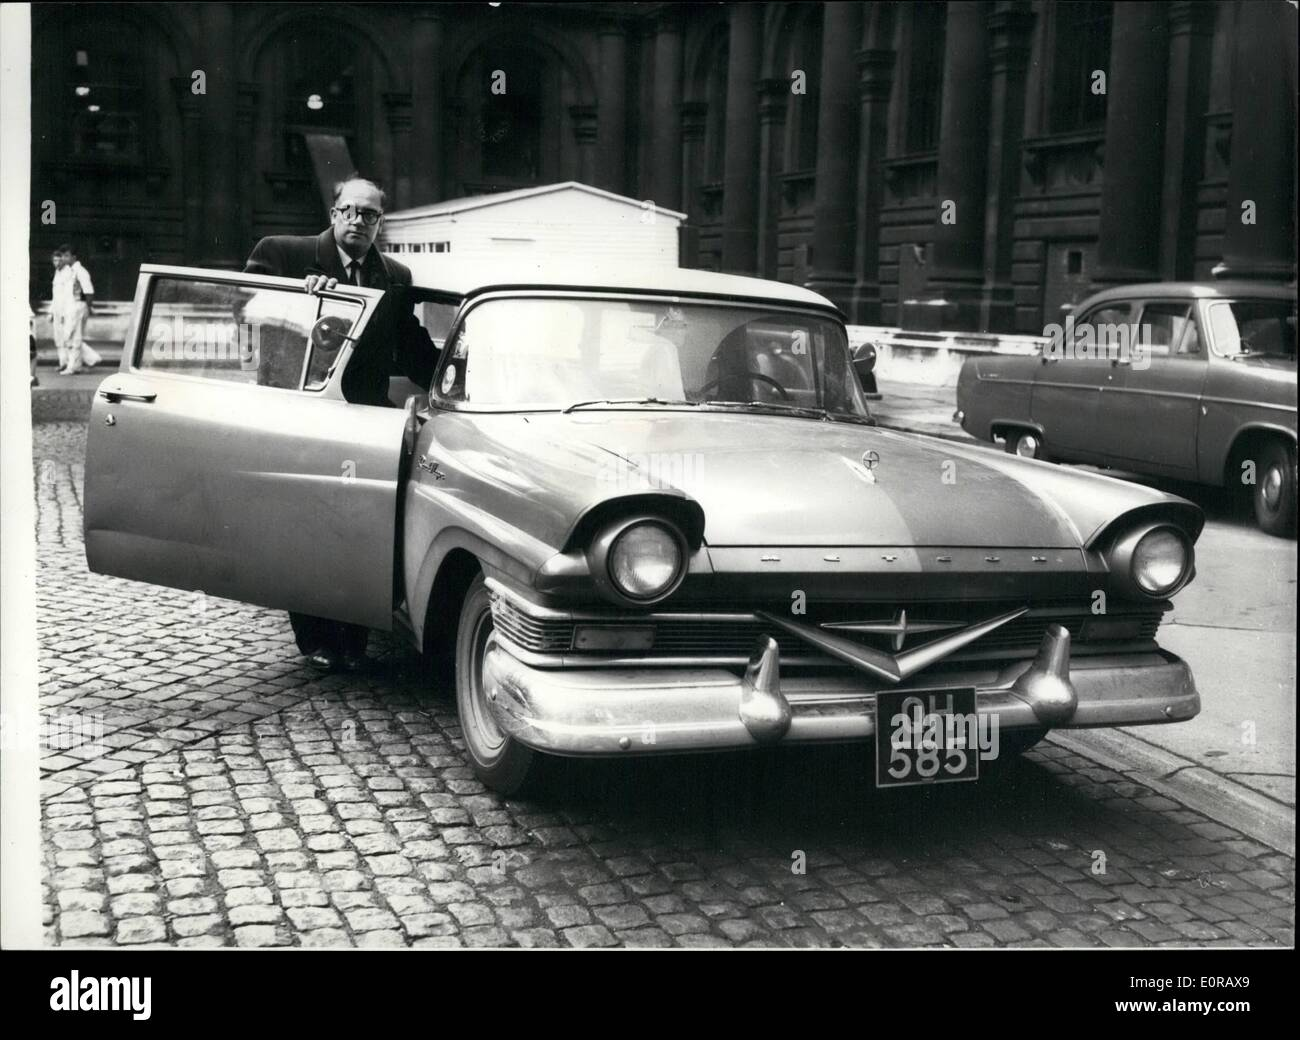 Nov. 11, 1958 - Victor Banner visits the Foreign office with his 120 M.P.H. car.: Victor Banner the 40 year old missile engineer this morning paid a visit to the Foreign Office. His job in Canada had ended so he drove his wife and their family down to New York intending to board a liner for Britain. While on a sightseeing trip to Washington he lost his wallet containing £600. He went to the British Embassy and they paid £288 for the family to travel to Britain. Mr. Banner said nothing about his sleek 120 H.P - Stock Image